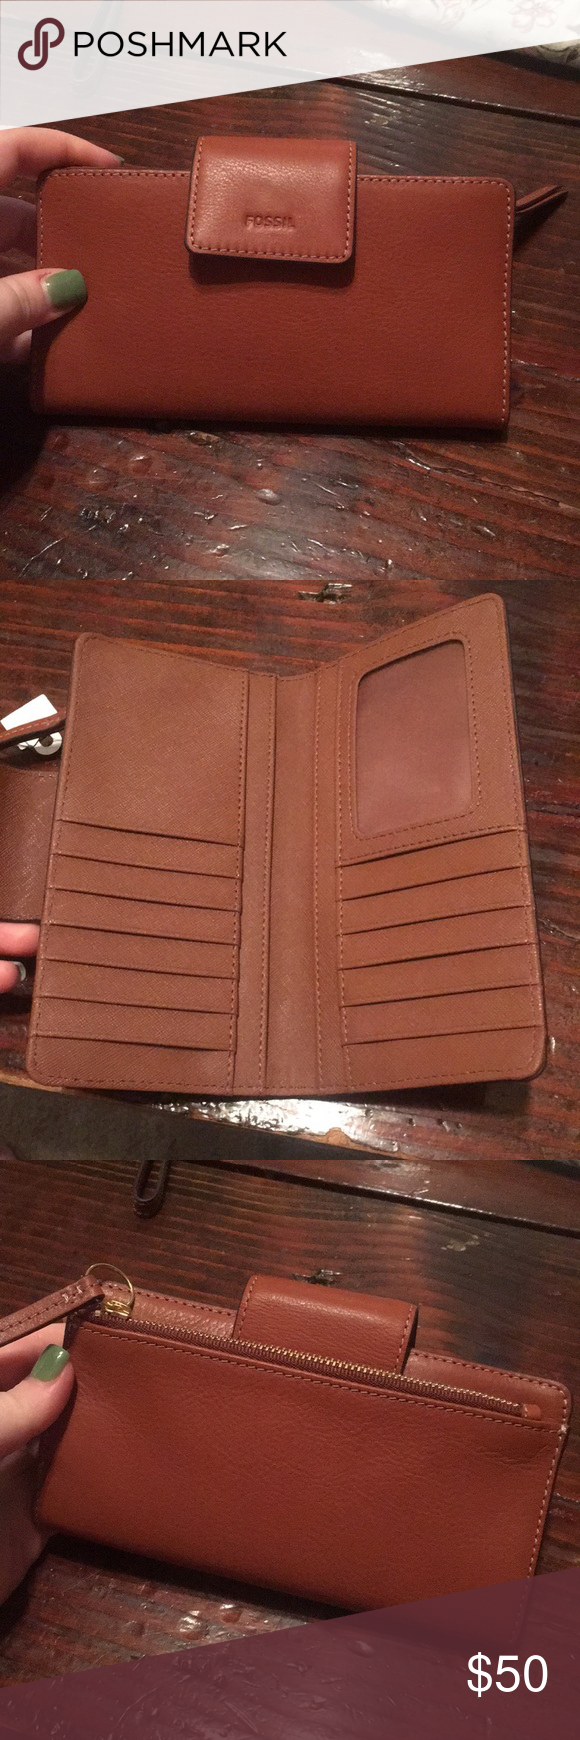 Fossil wallet Brand new. Never used. Perfect condition